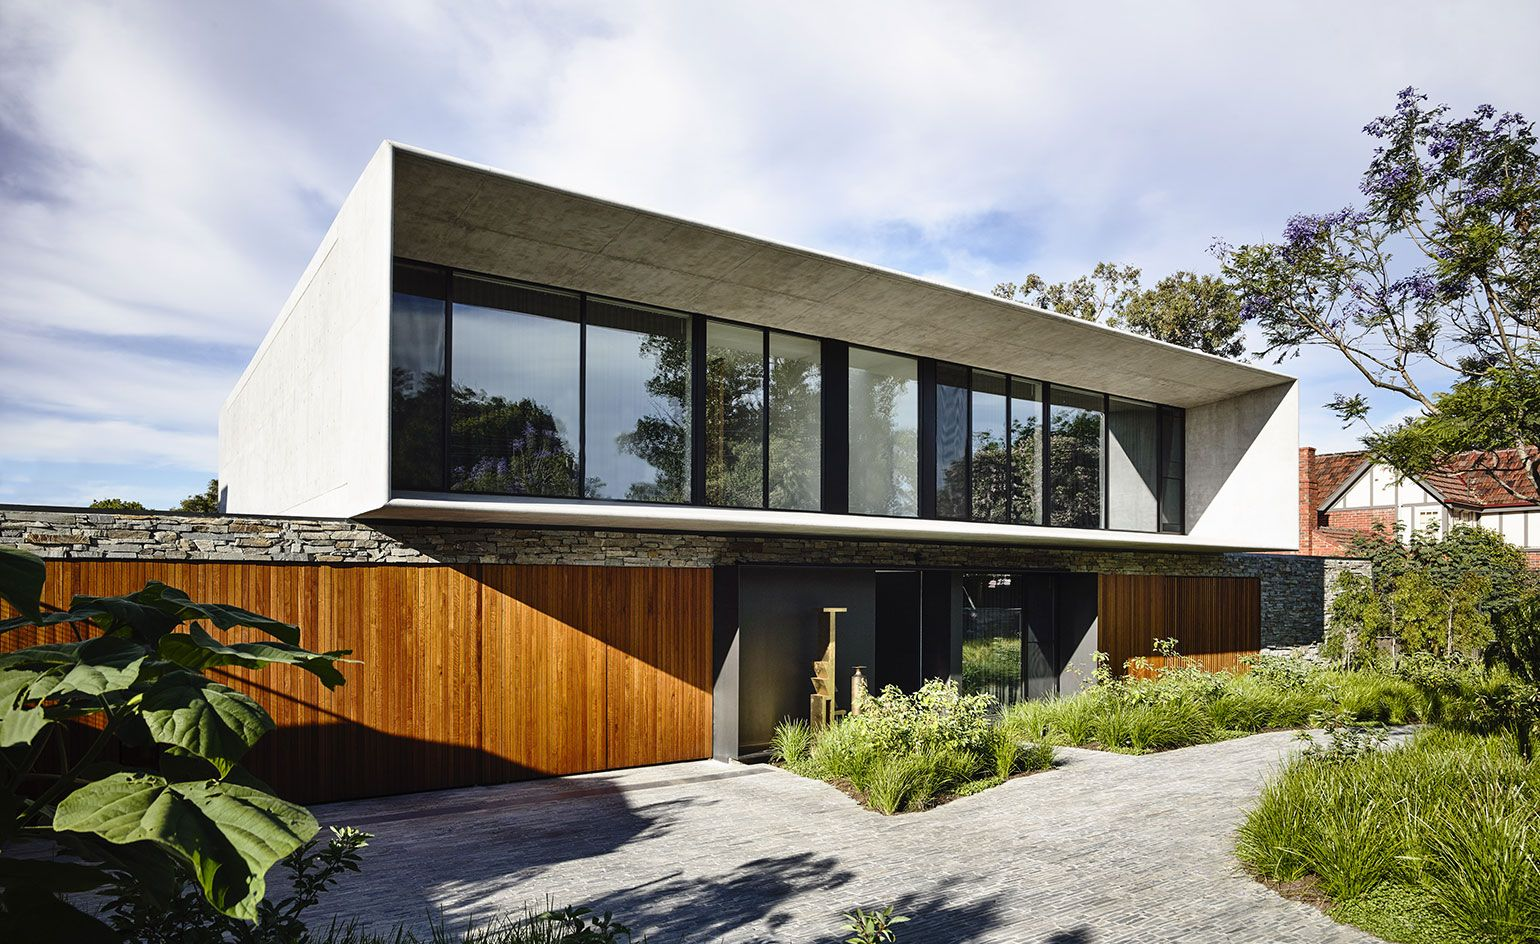 Architettura Case Moderne Idee concrete synergy: a modern house where brazil meets